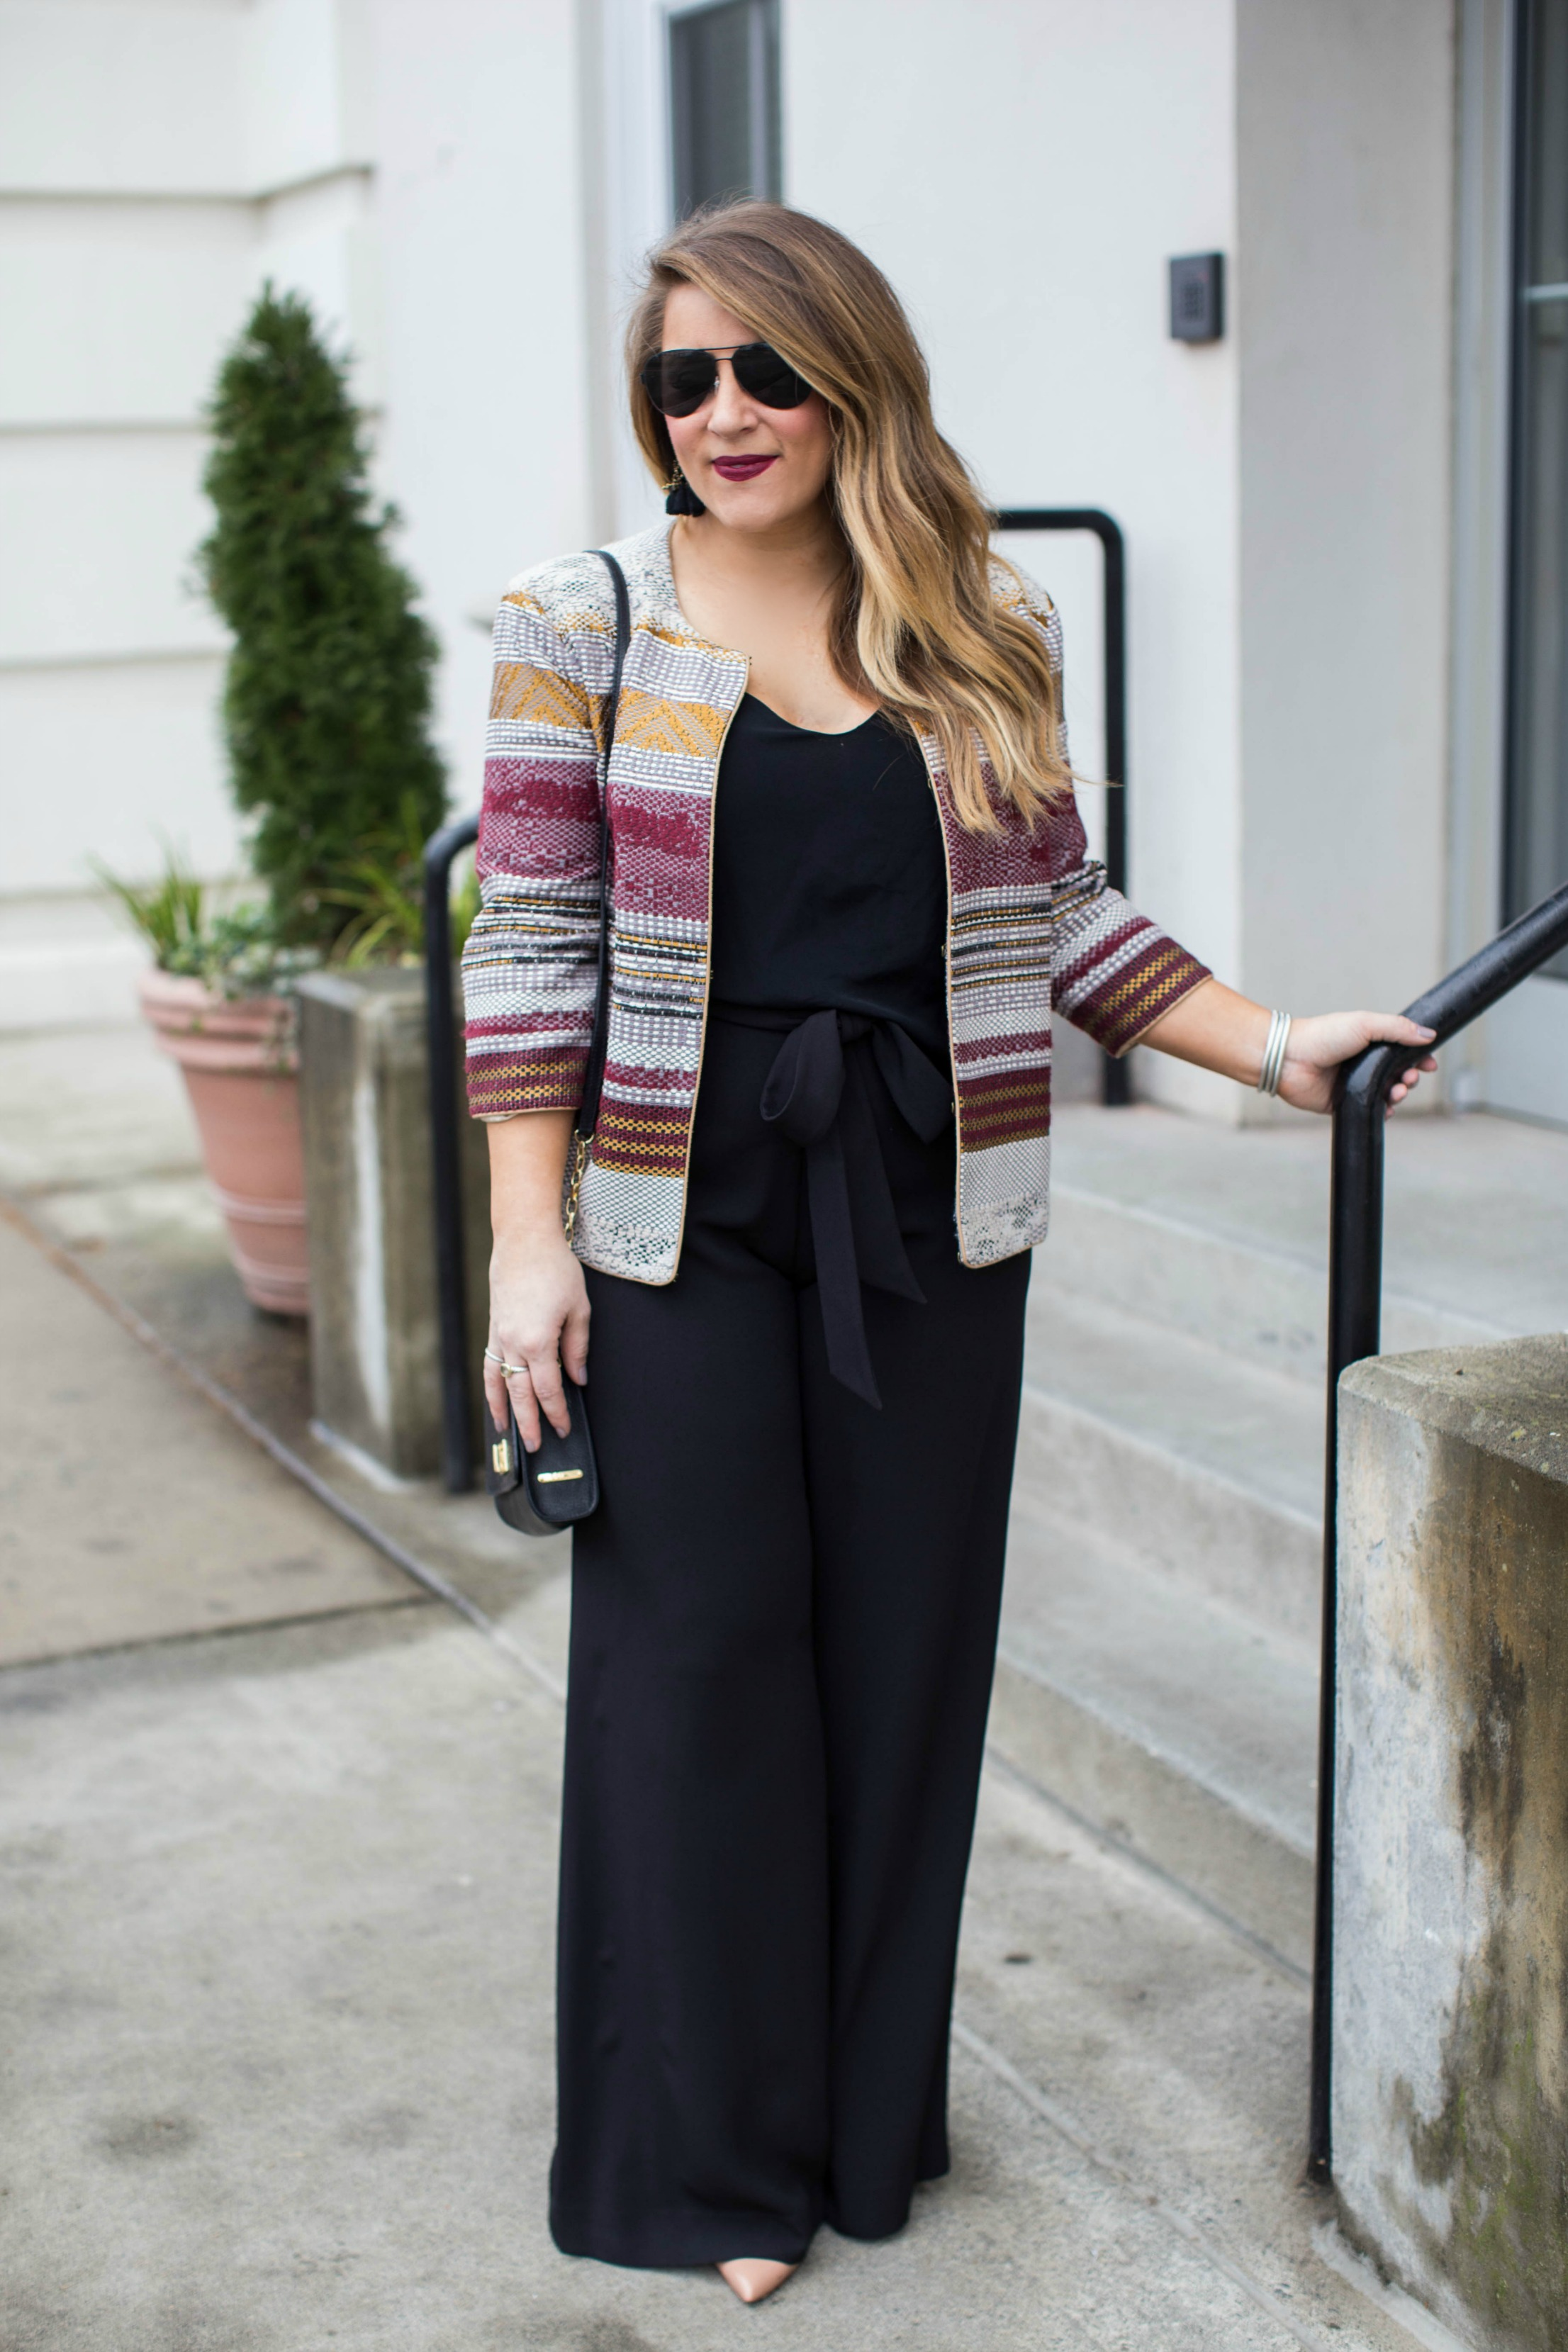 Building a workwear wardrobe the pieces you need | coffeebeansandbobbypins.com